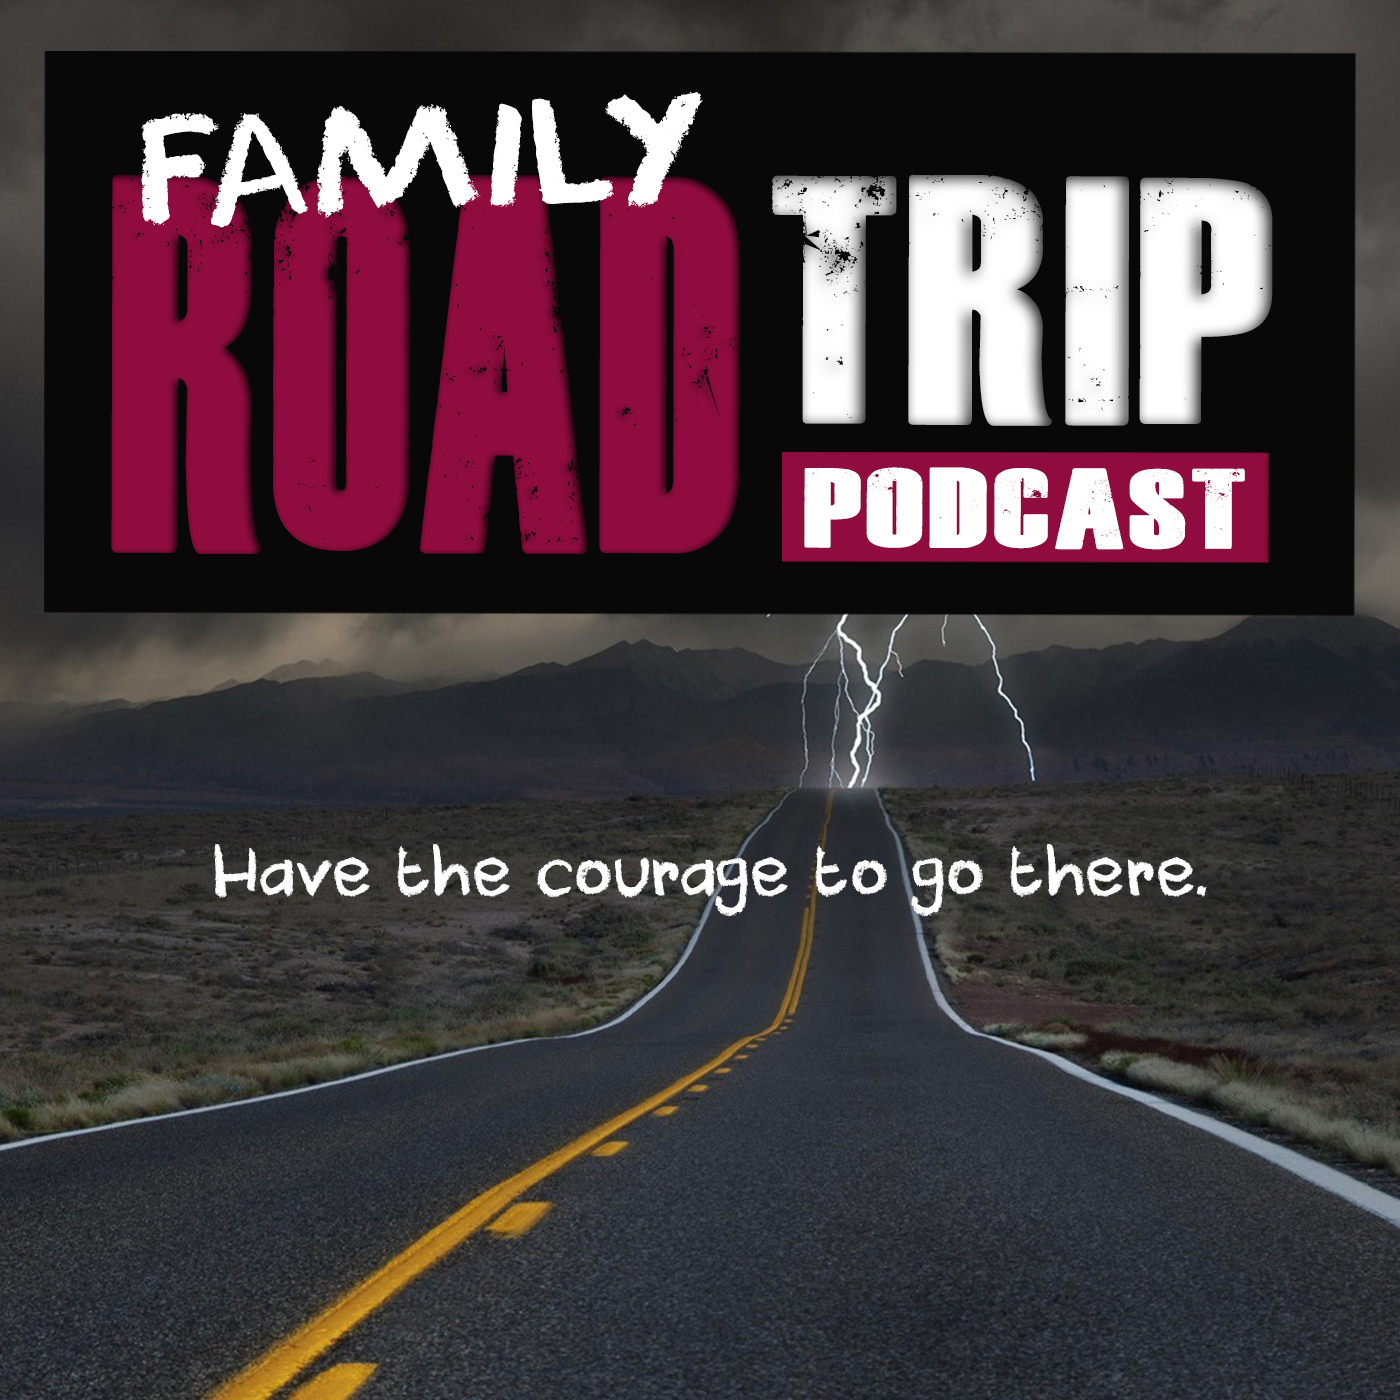 FAMILY ROAD TRIP PODCAST show art